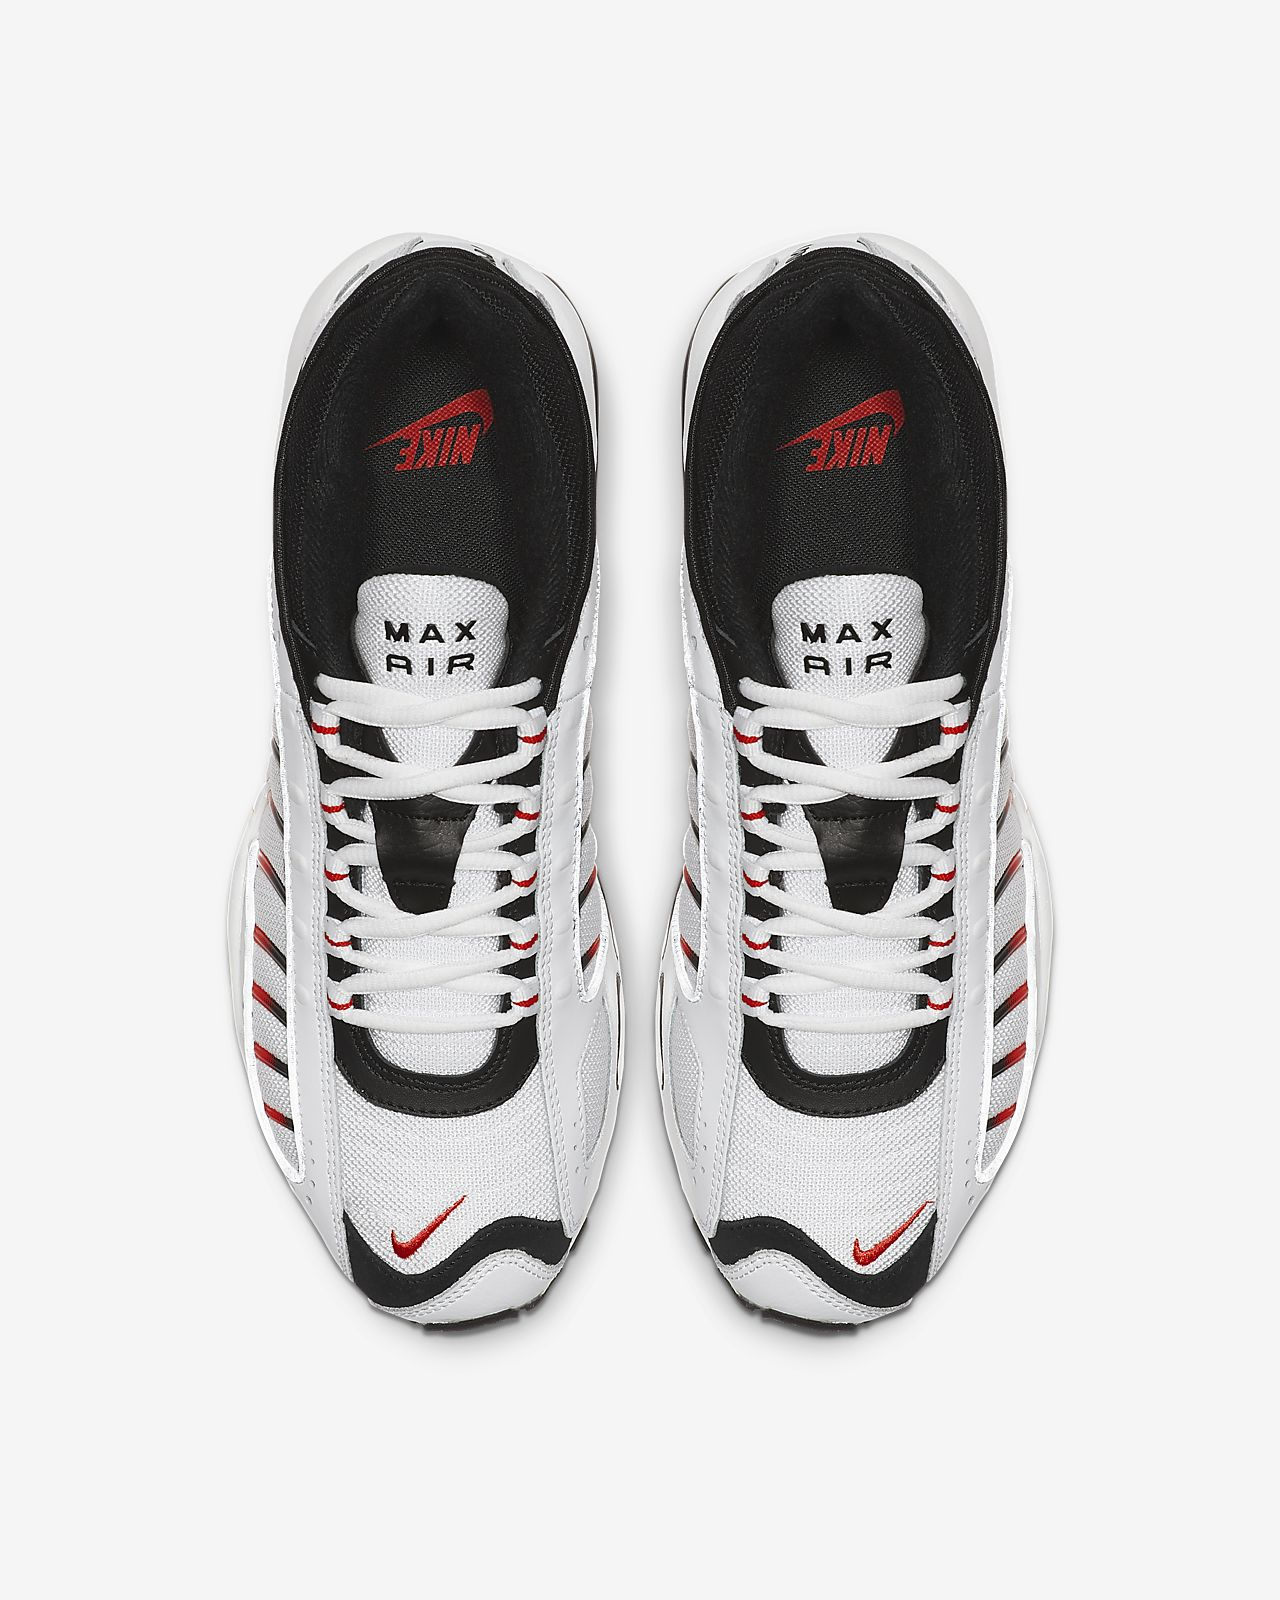 Nike Air Max Tailwind IV White Black Red AQ2567 104 Release